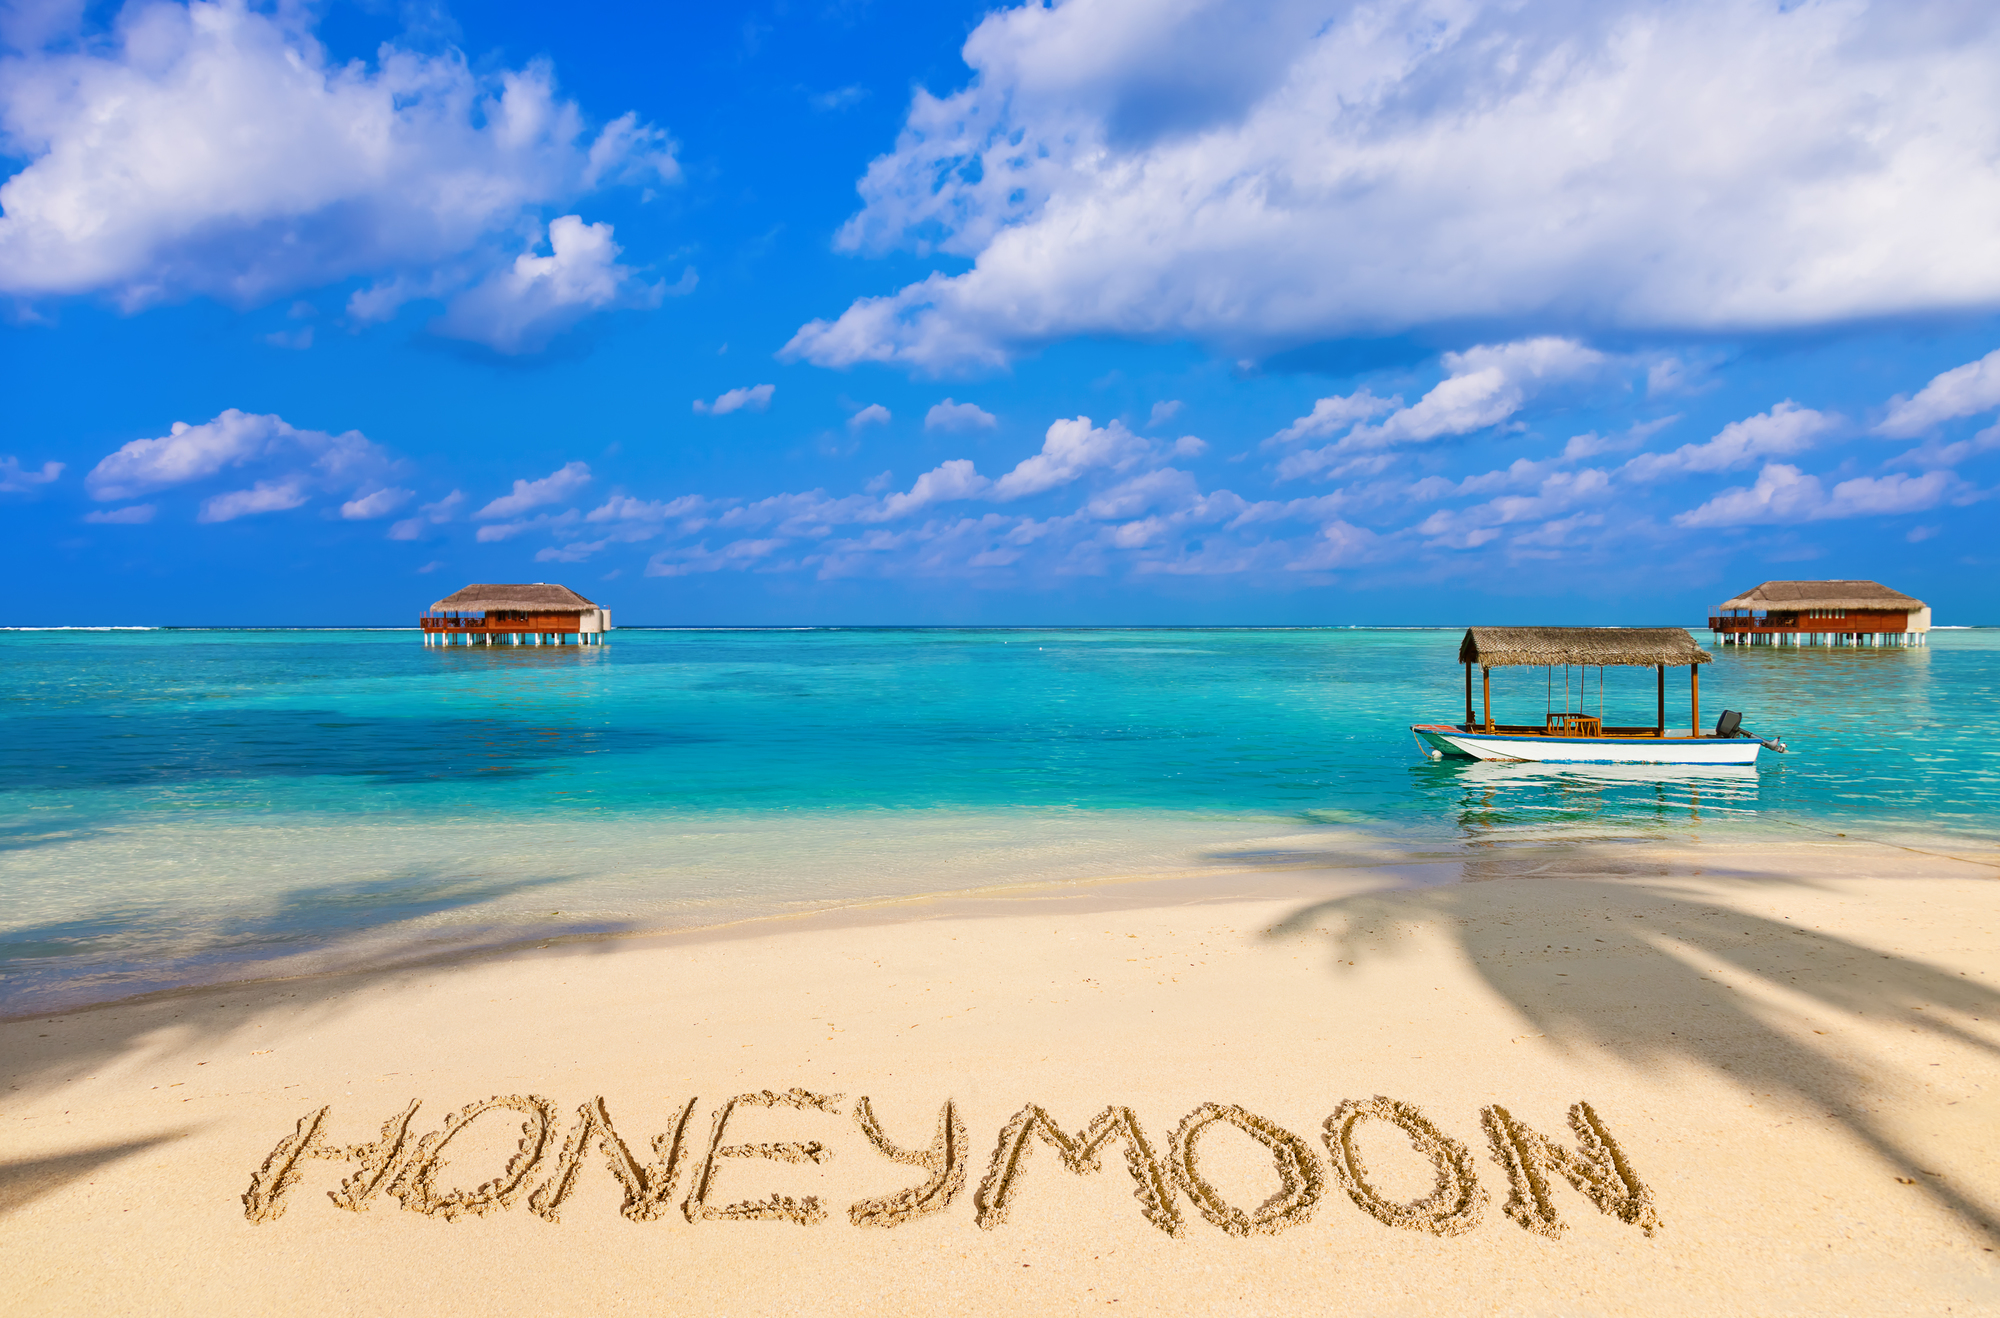 Word Honeymoon on beach - concept holiday background